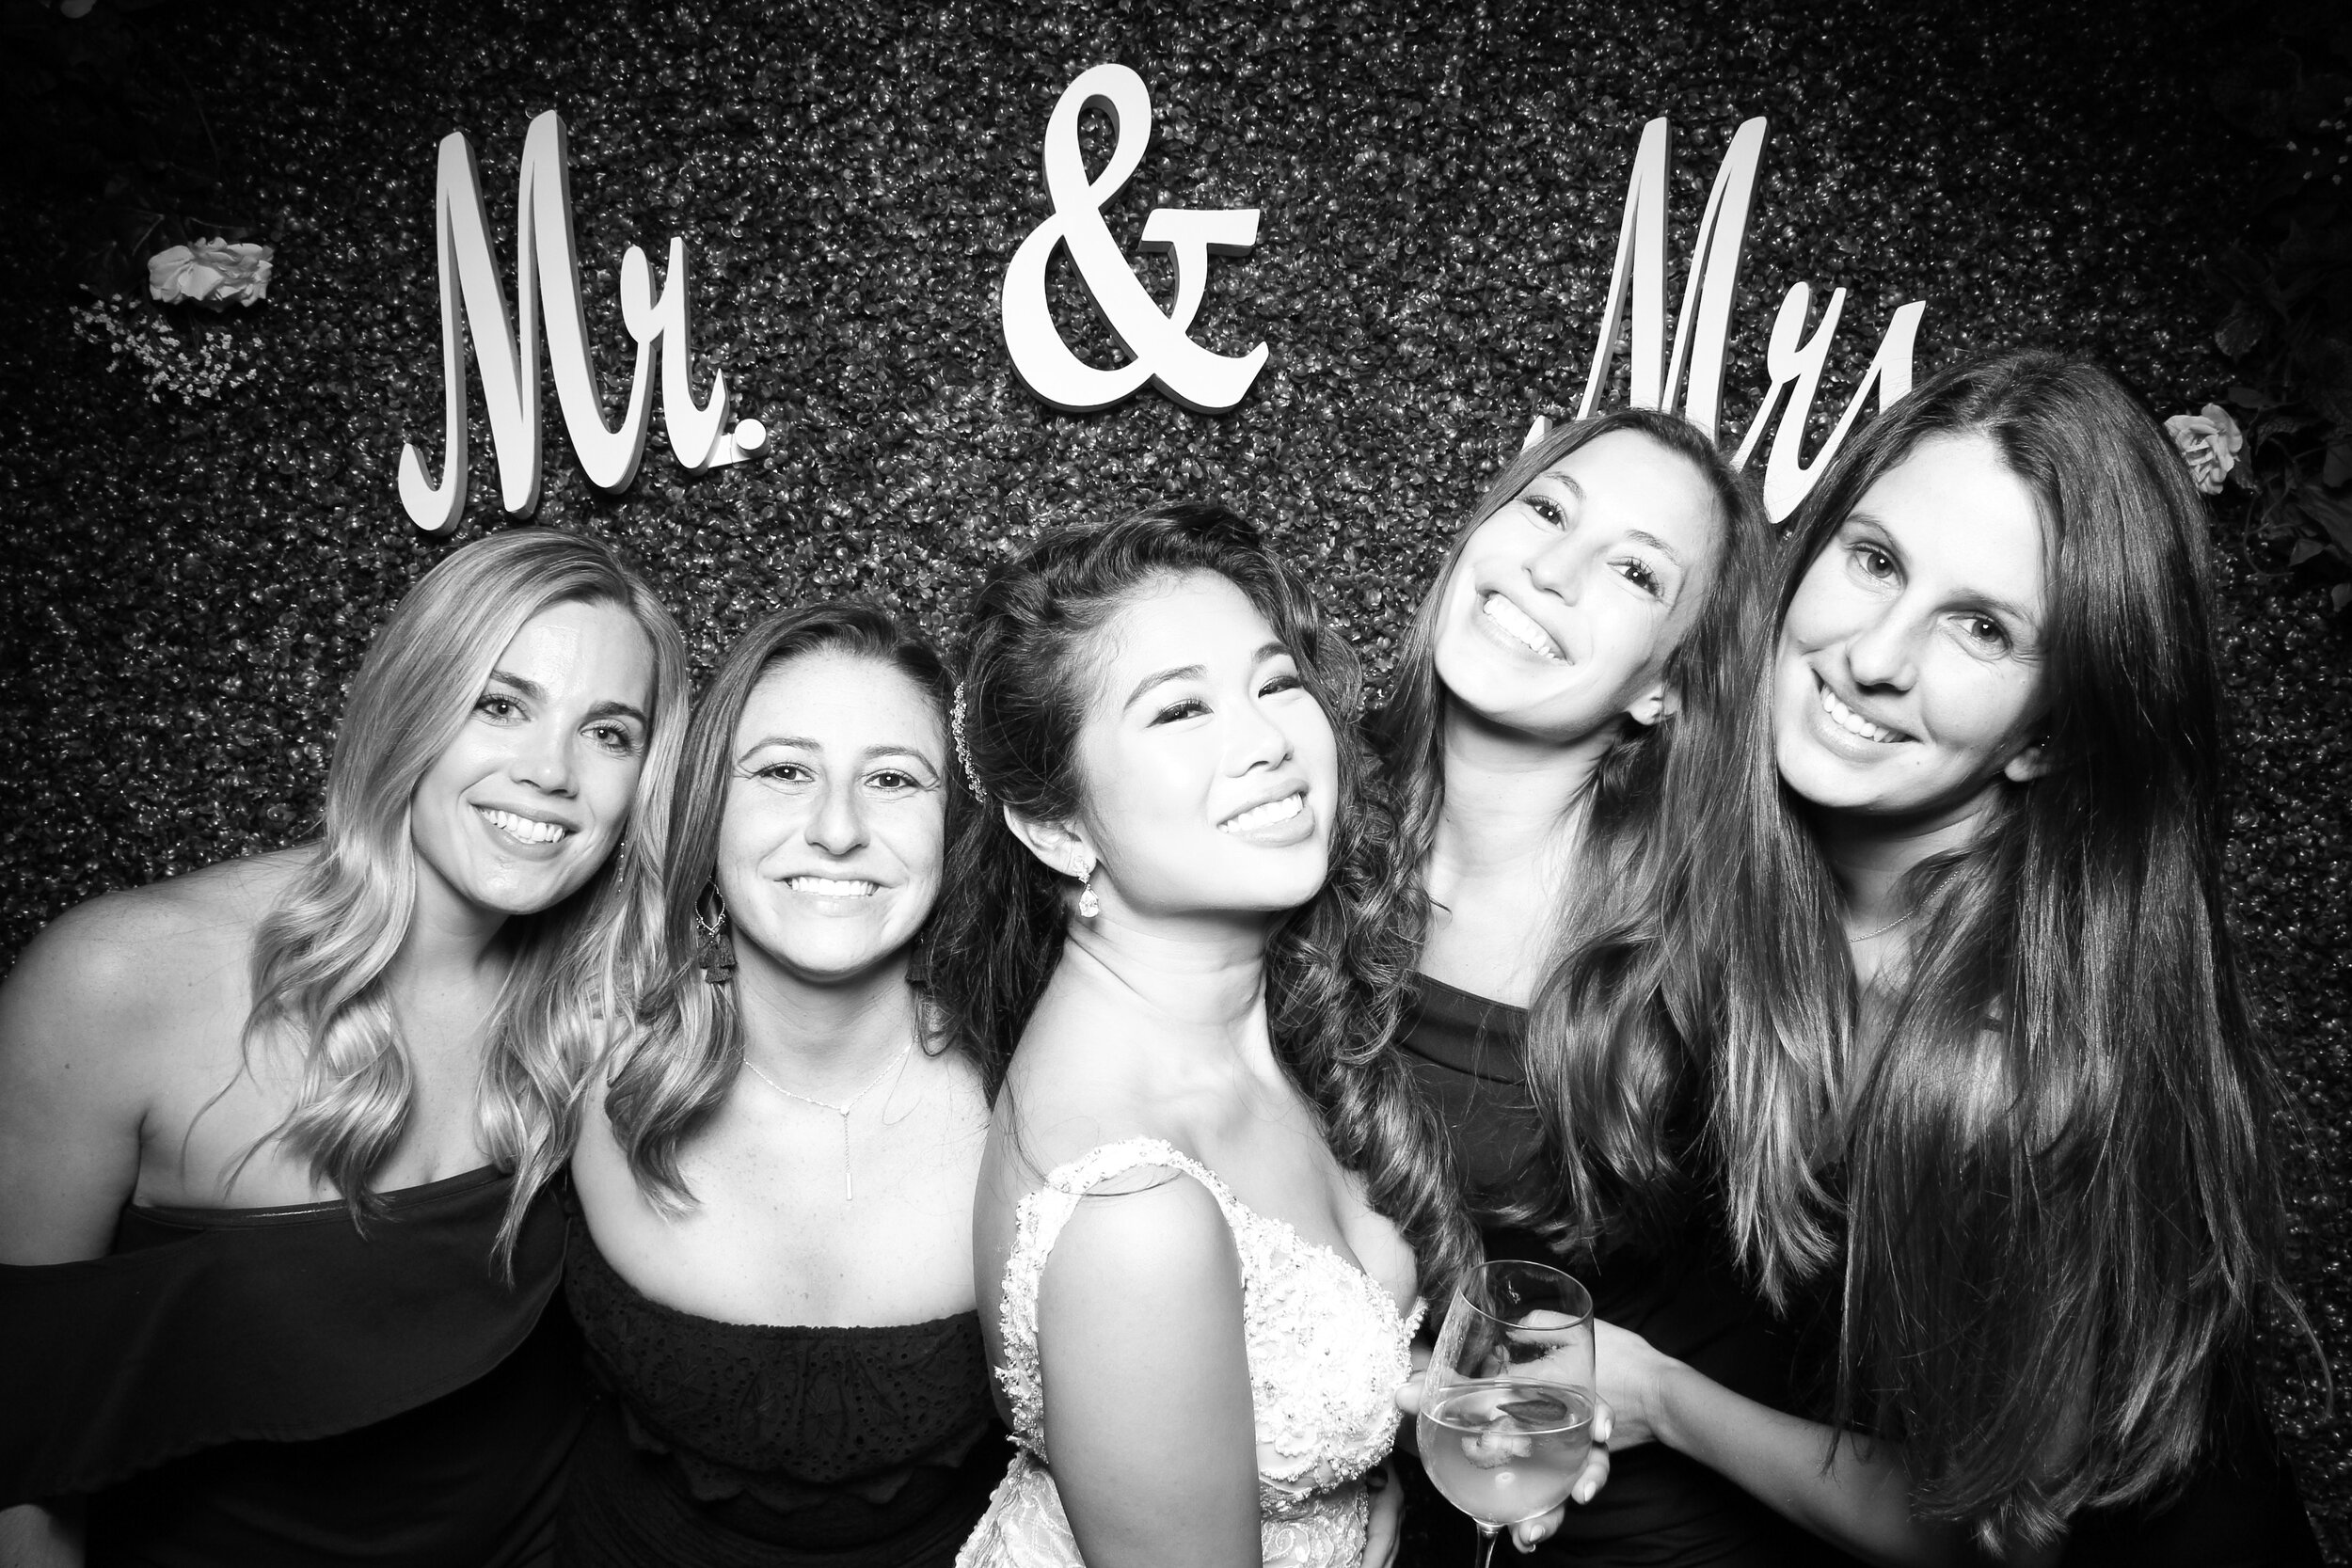 Green_Hedge_Ivy_Wall_Backdrop_Photo_Booth_Rental_Chicago_23.jpg